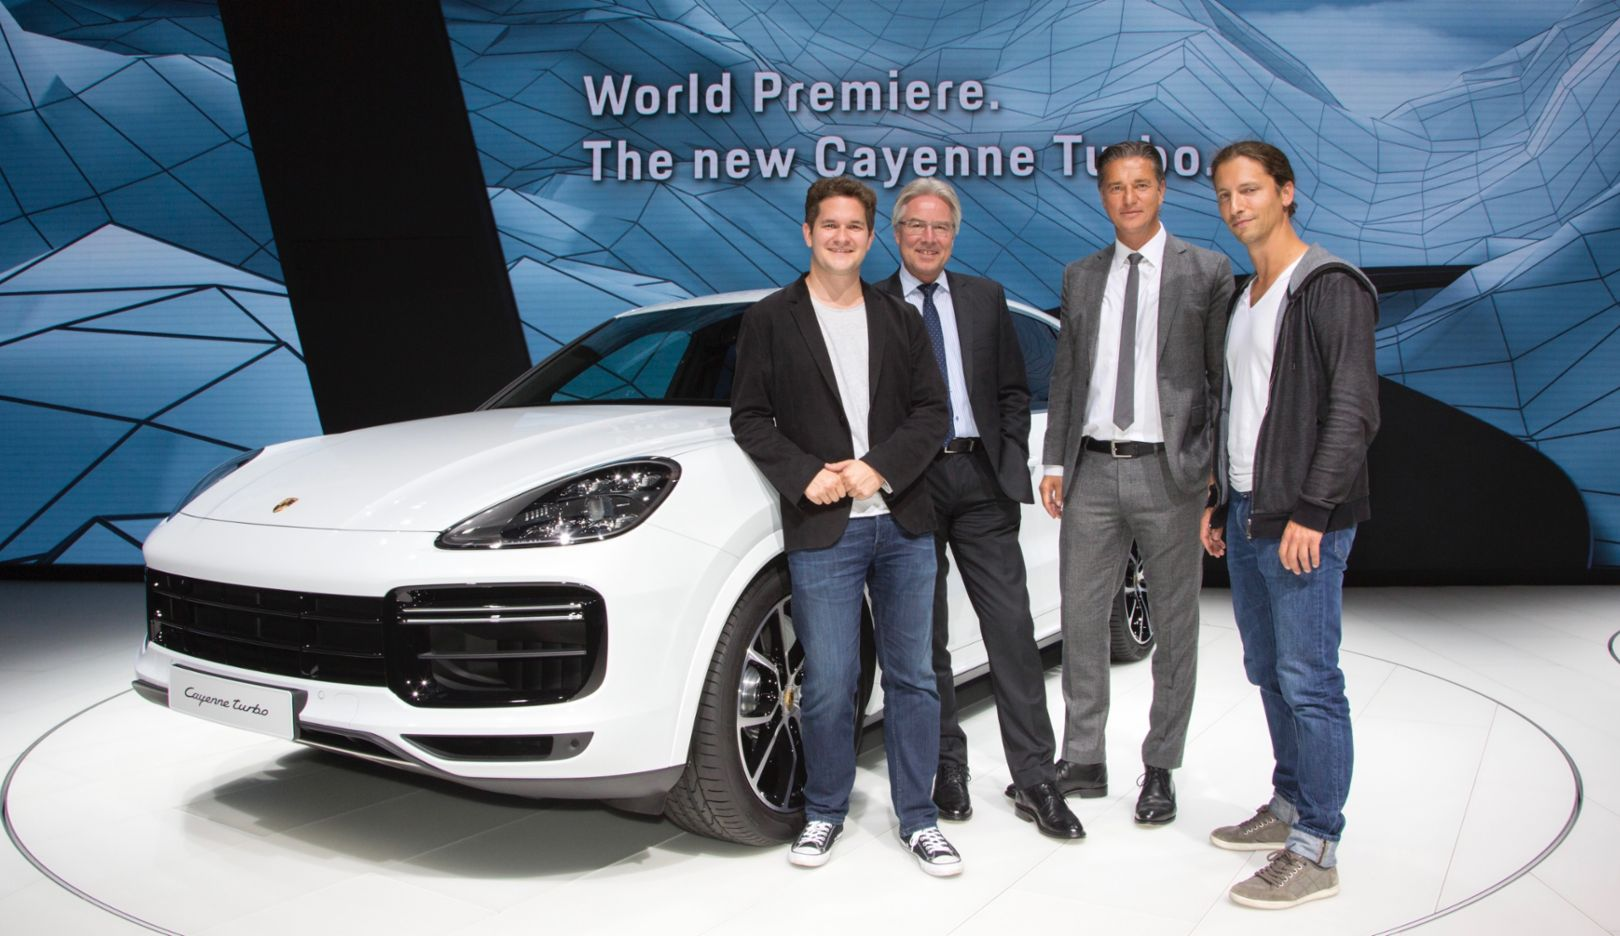 Thomas Bachem, Chancellor of CODE University, Andreas Haffner, Member of the Executive Board, Human Resources and Social Affairs at Porsche, Lutz Meschke, Vice President and Member of the Executive Board, Finance and IT at Porsche, Manuel Dolderer, President of CODE University, l-r, Cayenne Turbo, 2017, Porsche AG